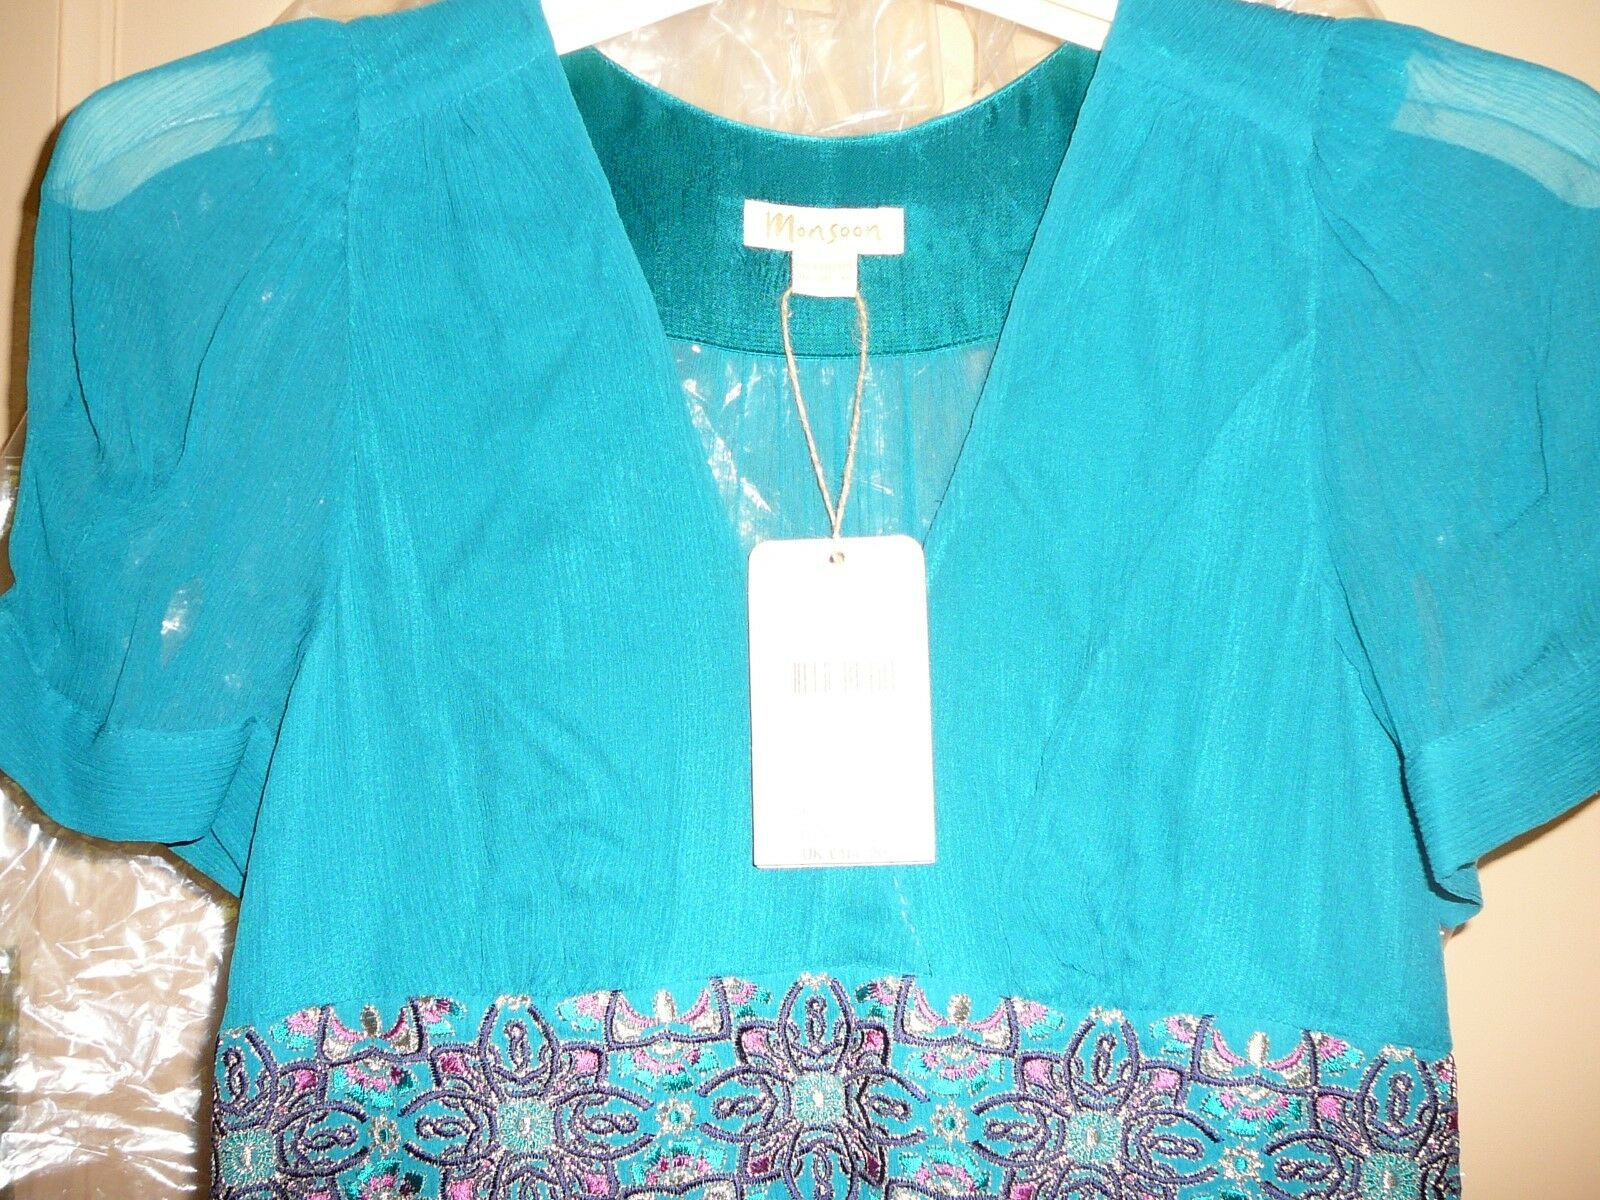 Monsoon Pure Silk Teal Floral Embroided Maxi Robe 10    Now